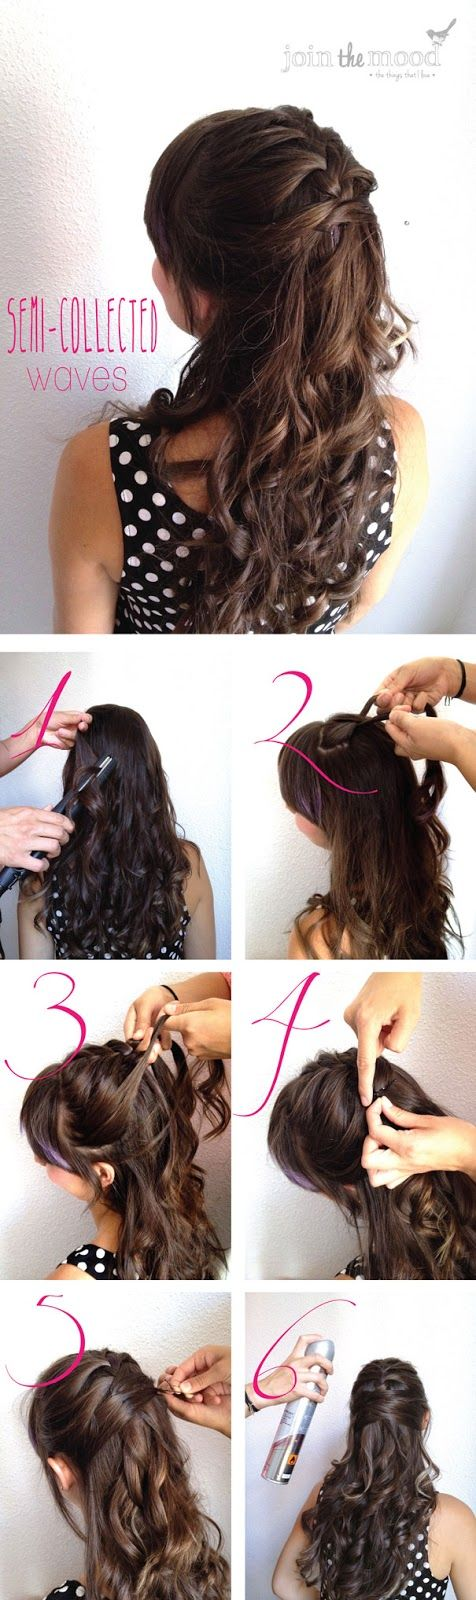 How To Make Semi-Collected Waves   hairstyles tutorial